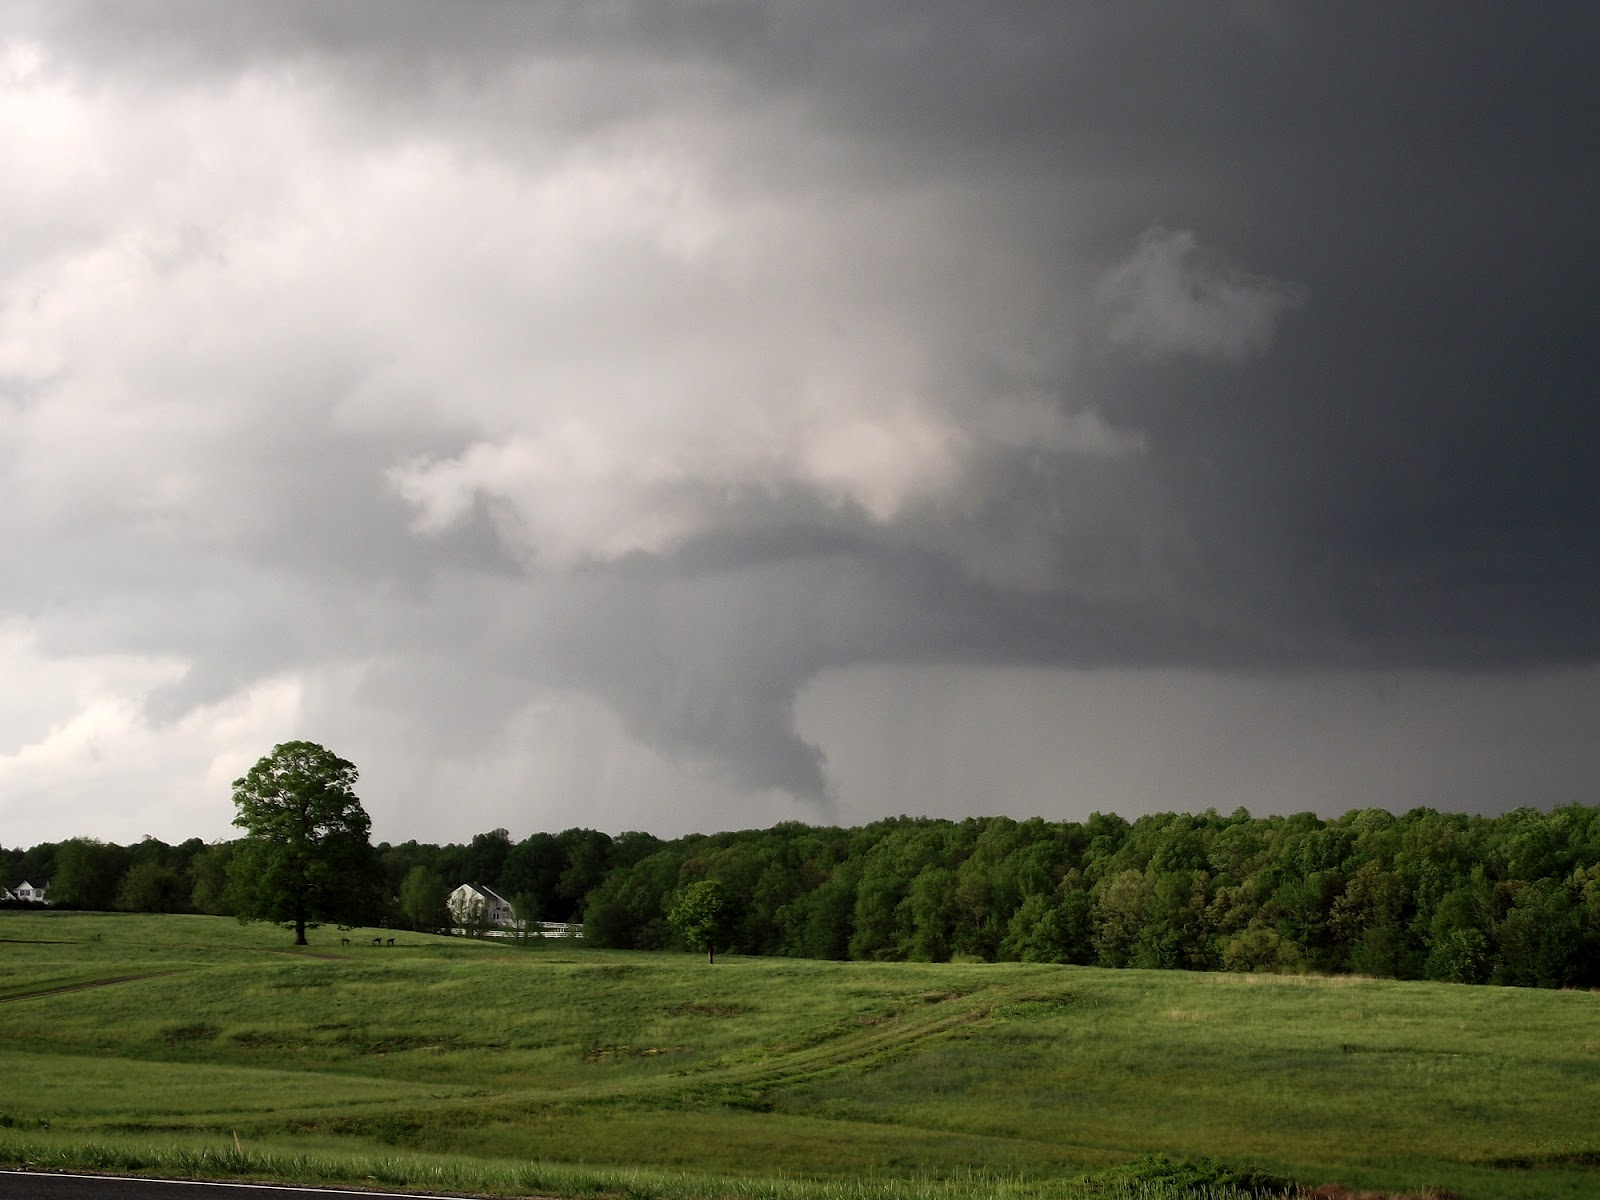 tornado single women Tornado sirens go off during piano recital - duration: 2:22 ajmadeux 1,224,274 views 2:22 angry monkey sounds - duration: 1:43 audio productions.